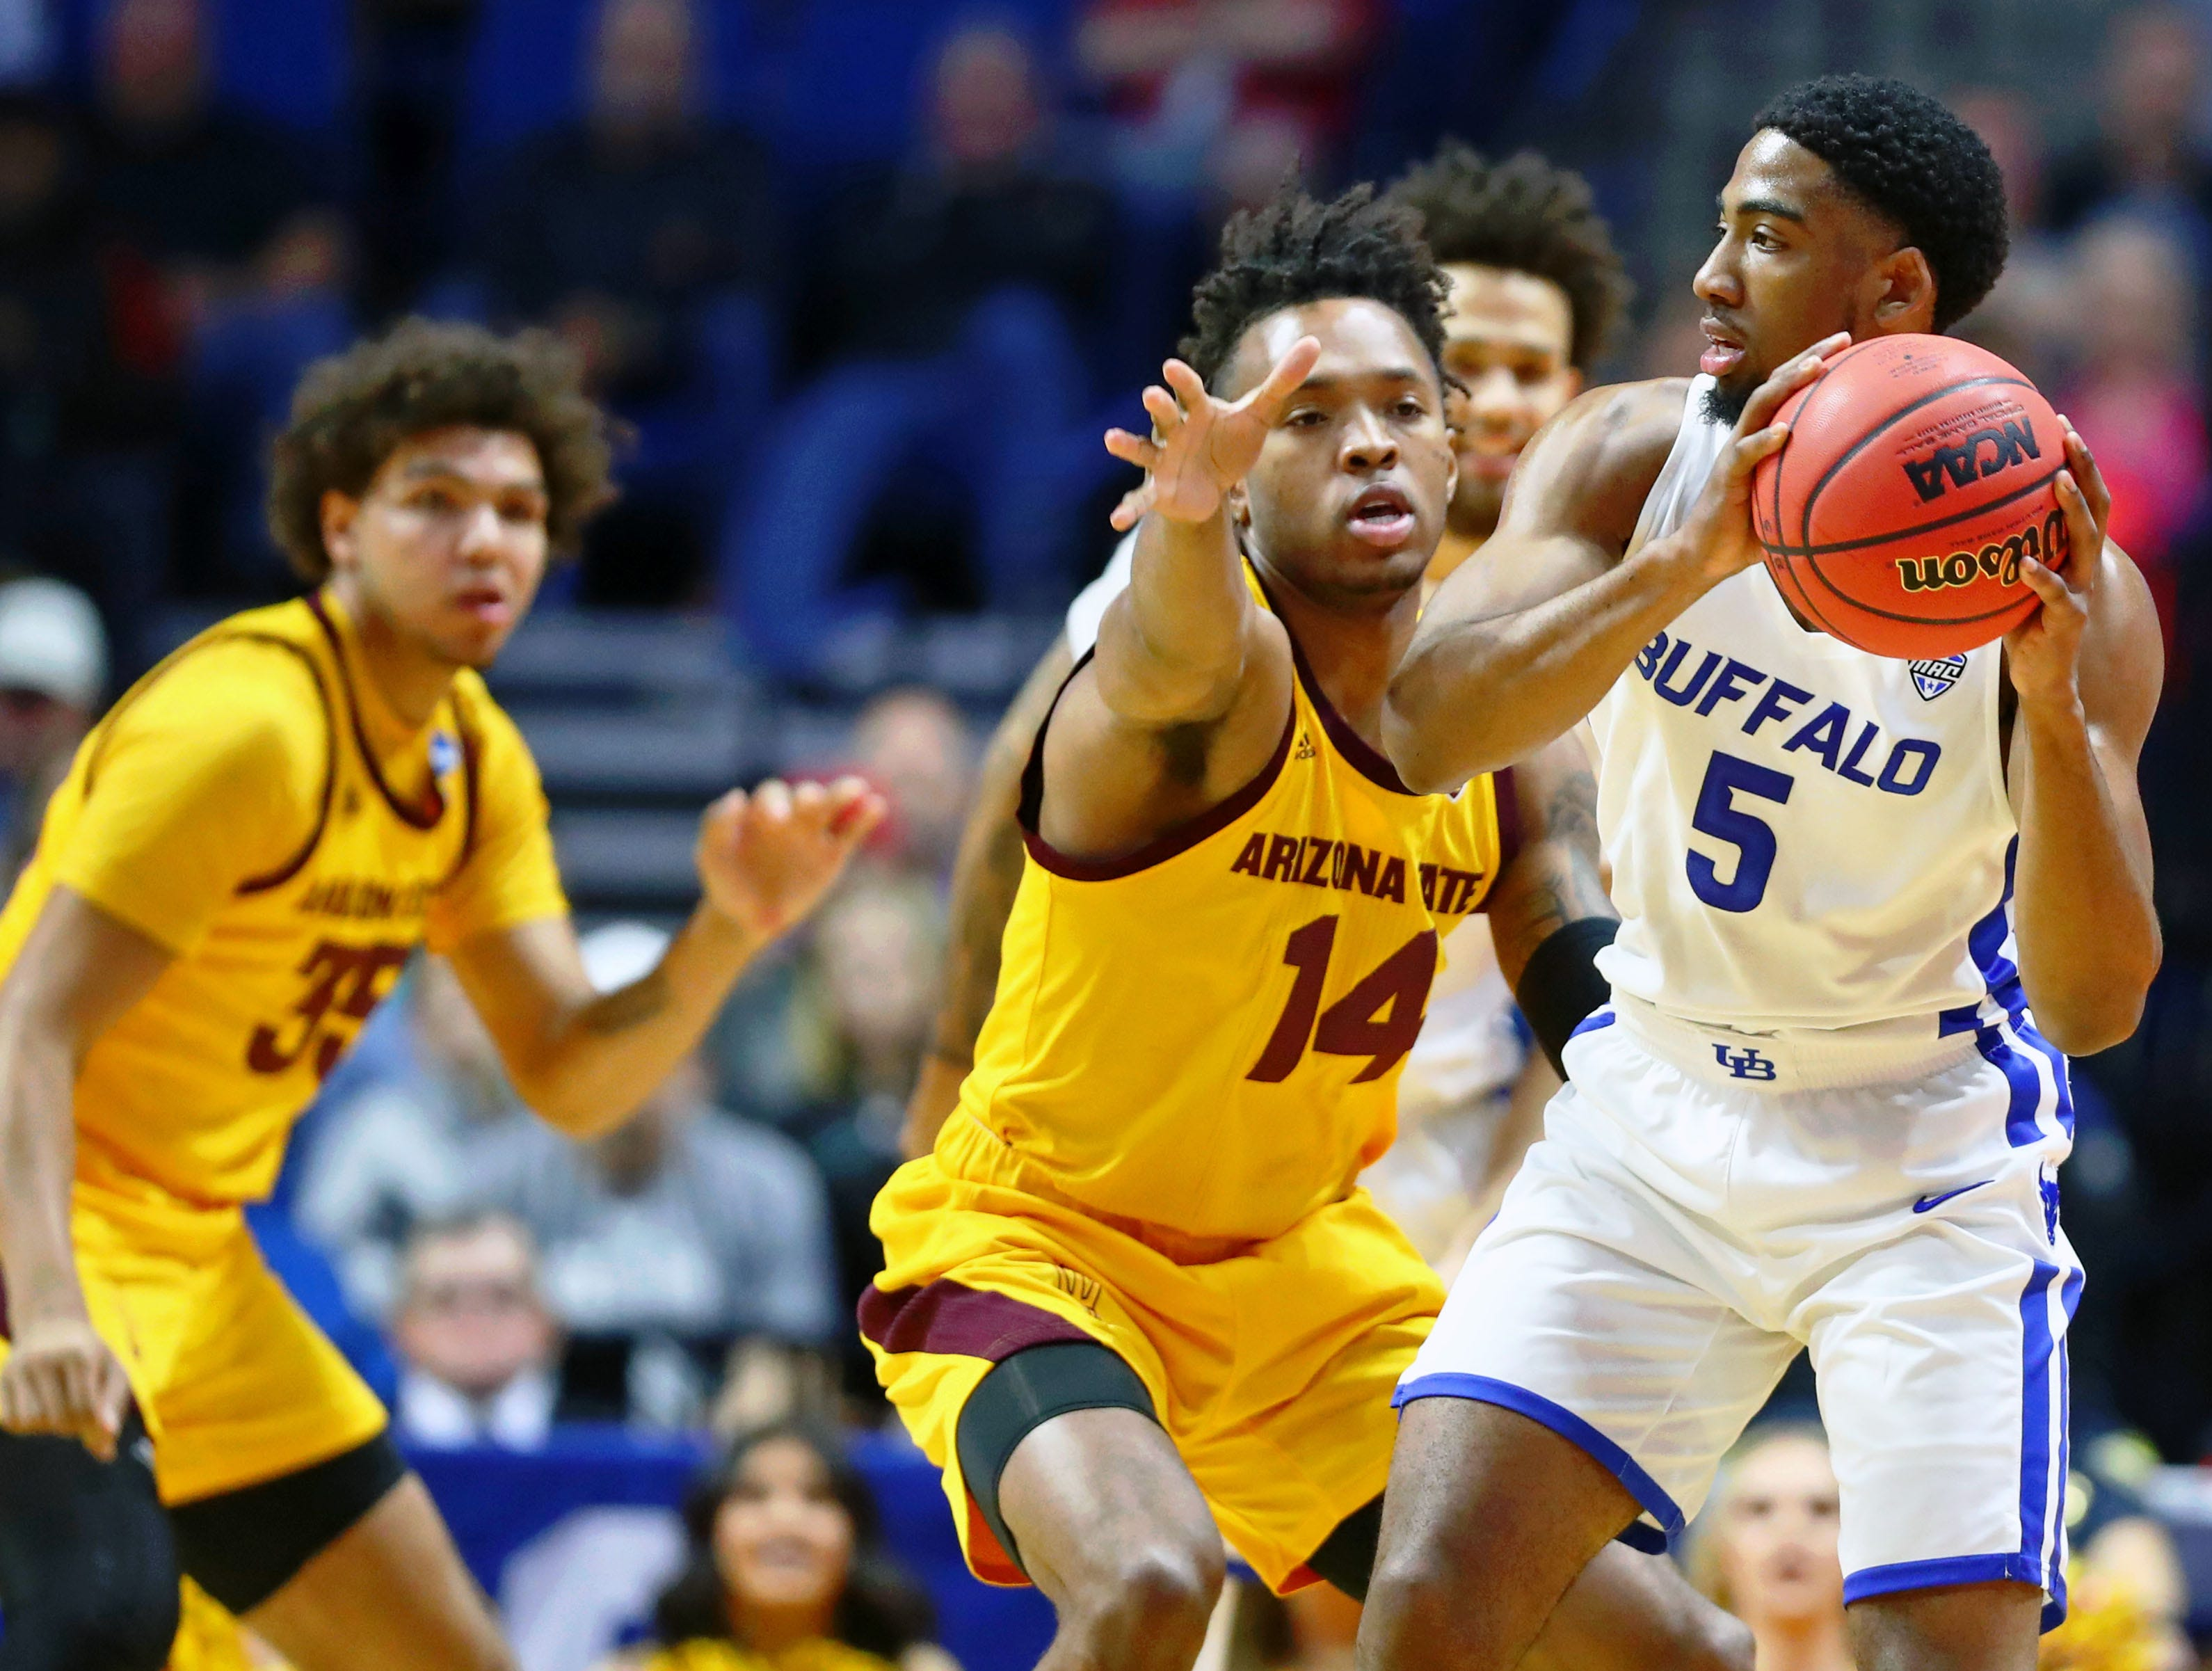 Mar 22, 2019; Tulsa, OK, USA; Buffalo Bulls guard CJ Massinburg (5) holds the ball while defended by Arizona State Sun Devils forward Kimani Lawrence (14) during the first half in the first round of the 2019 NCAA Tournament at BOK Center. Mandatory Credit: Mark J. Rebilas-USA TODAY Sports